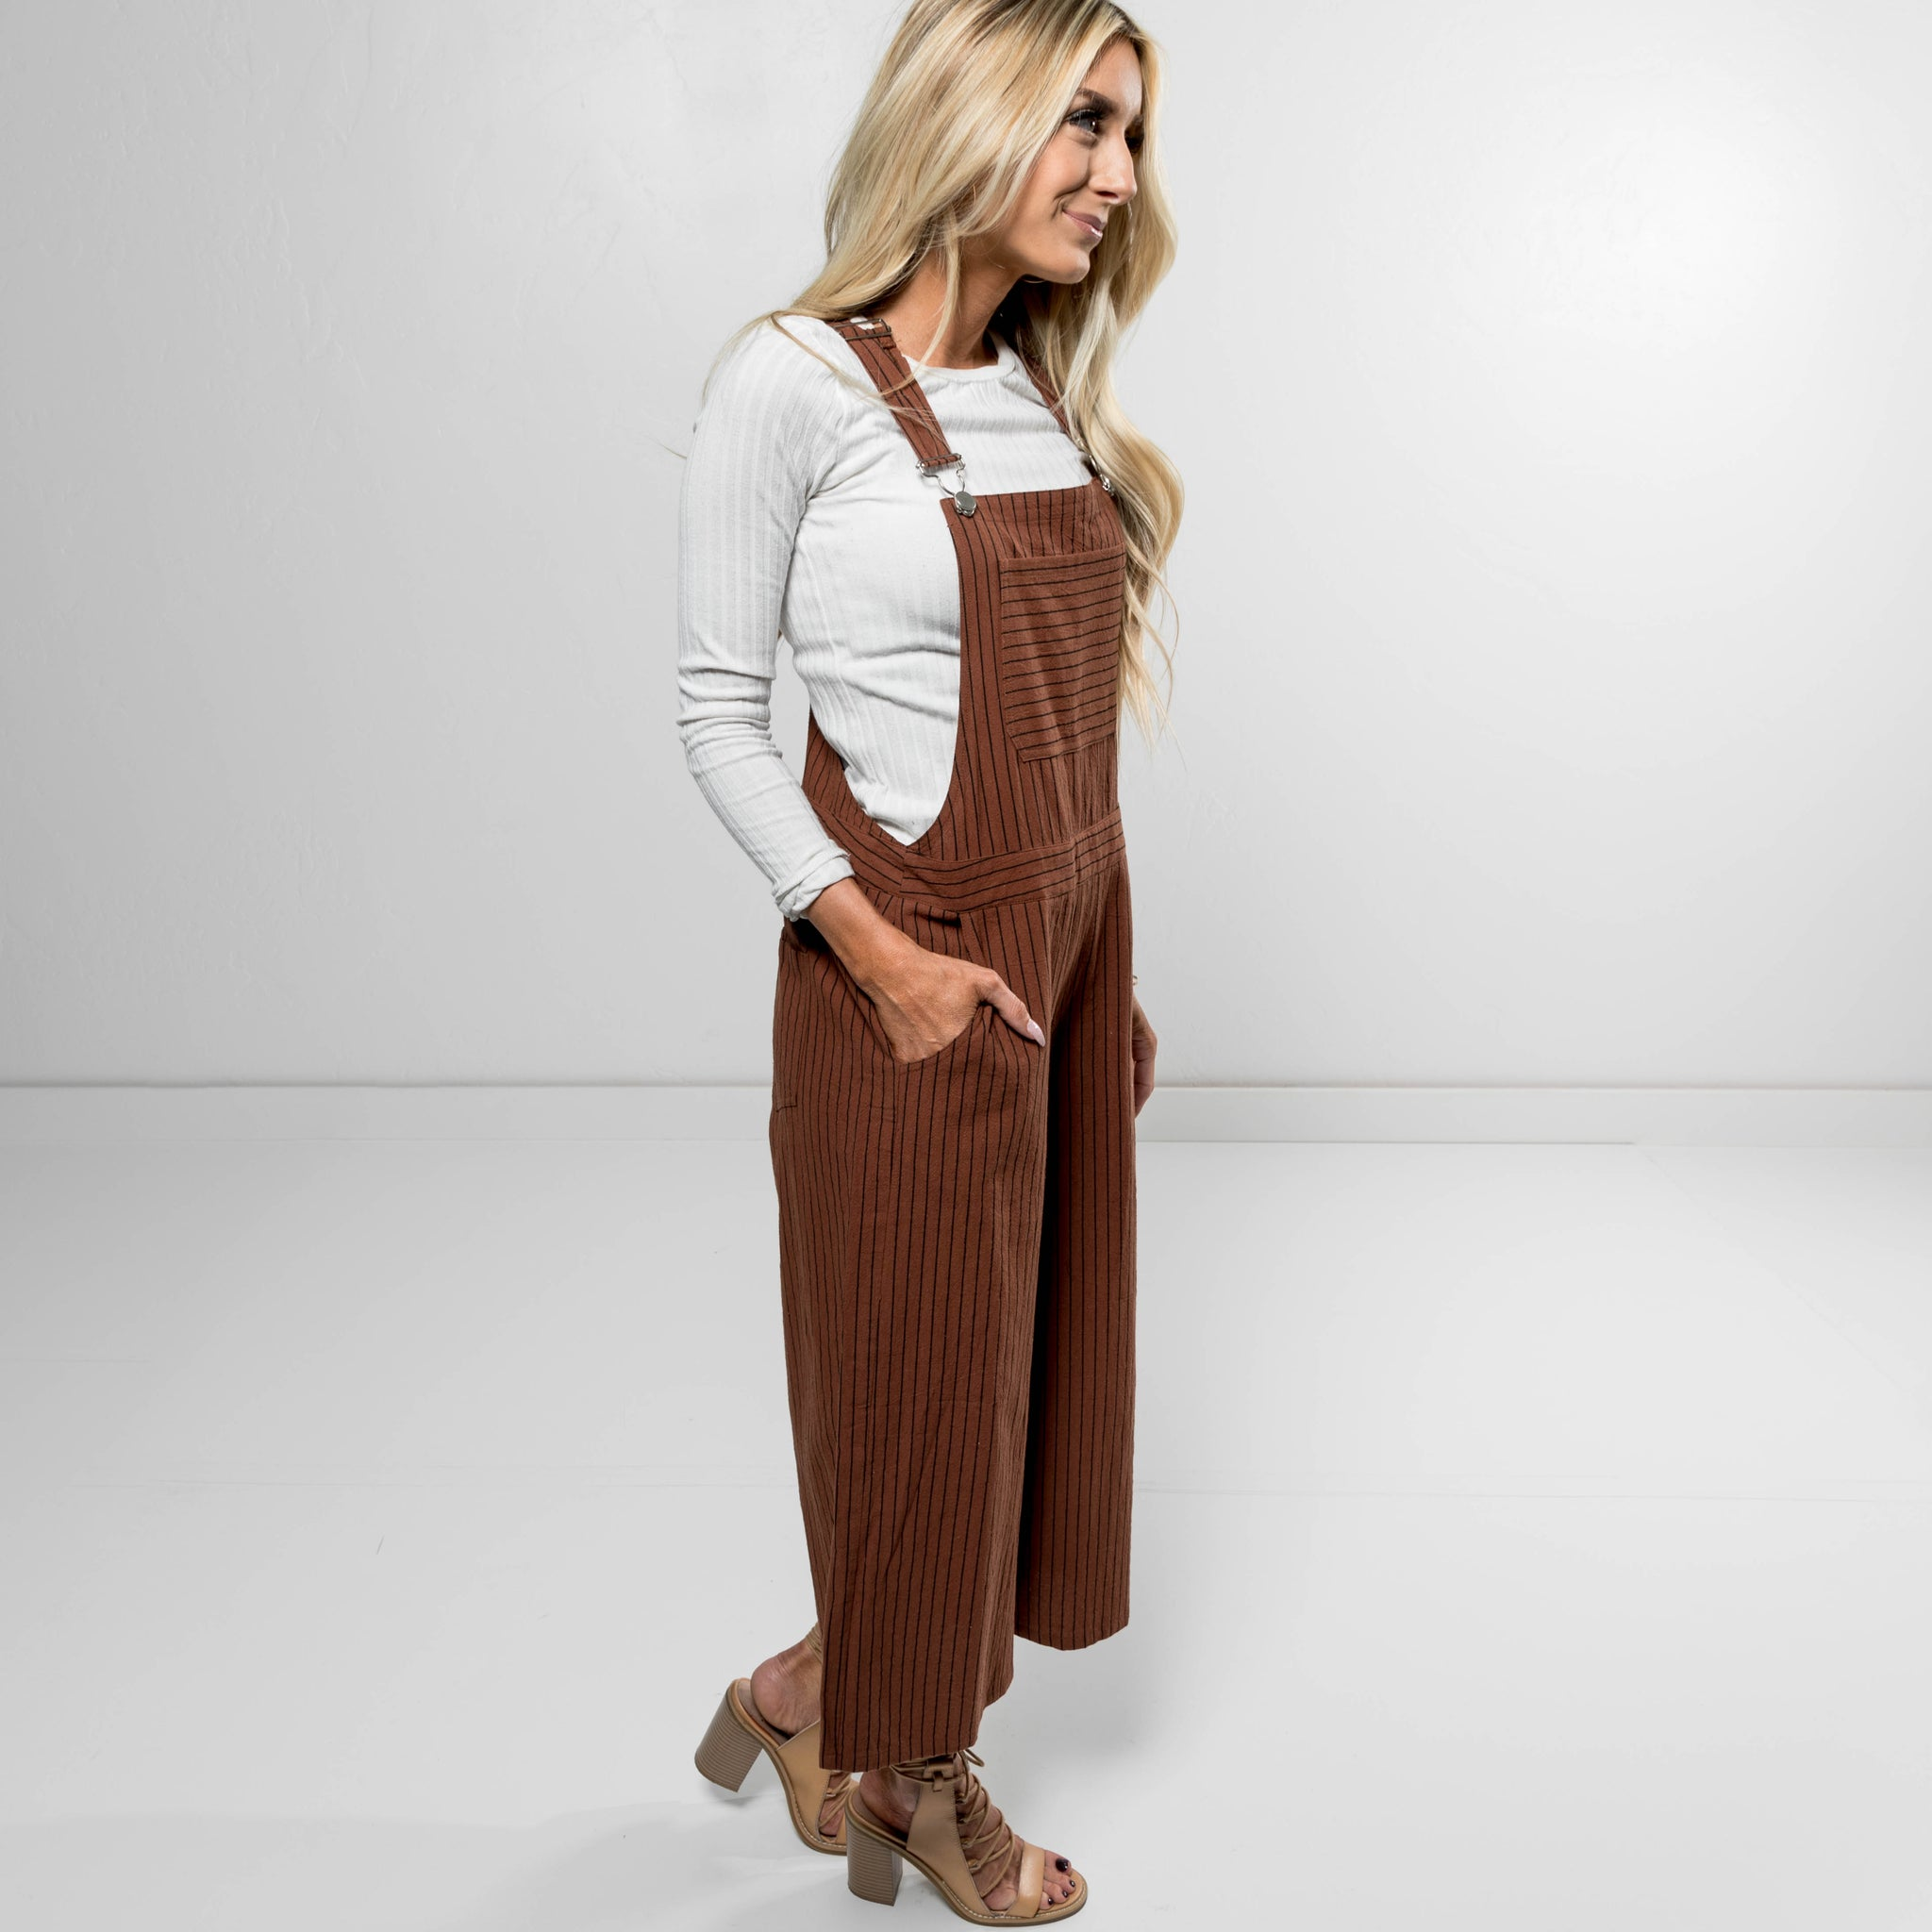 Alameda Overall Pant in Rust